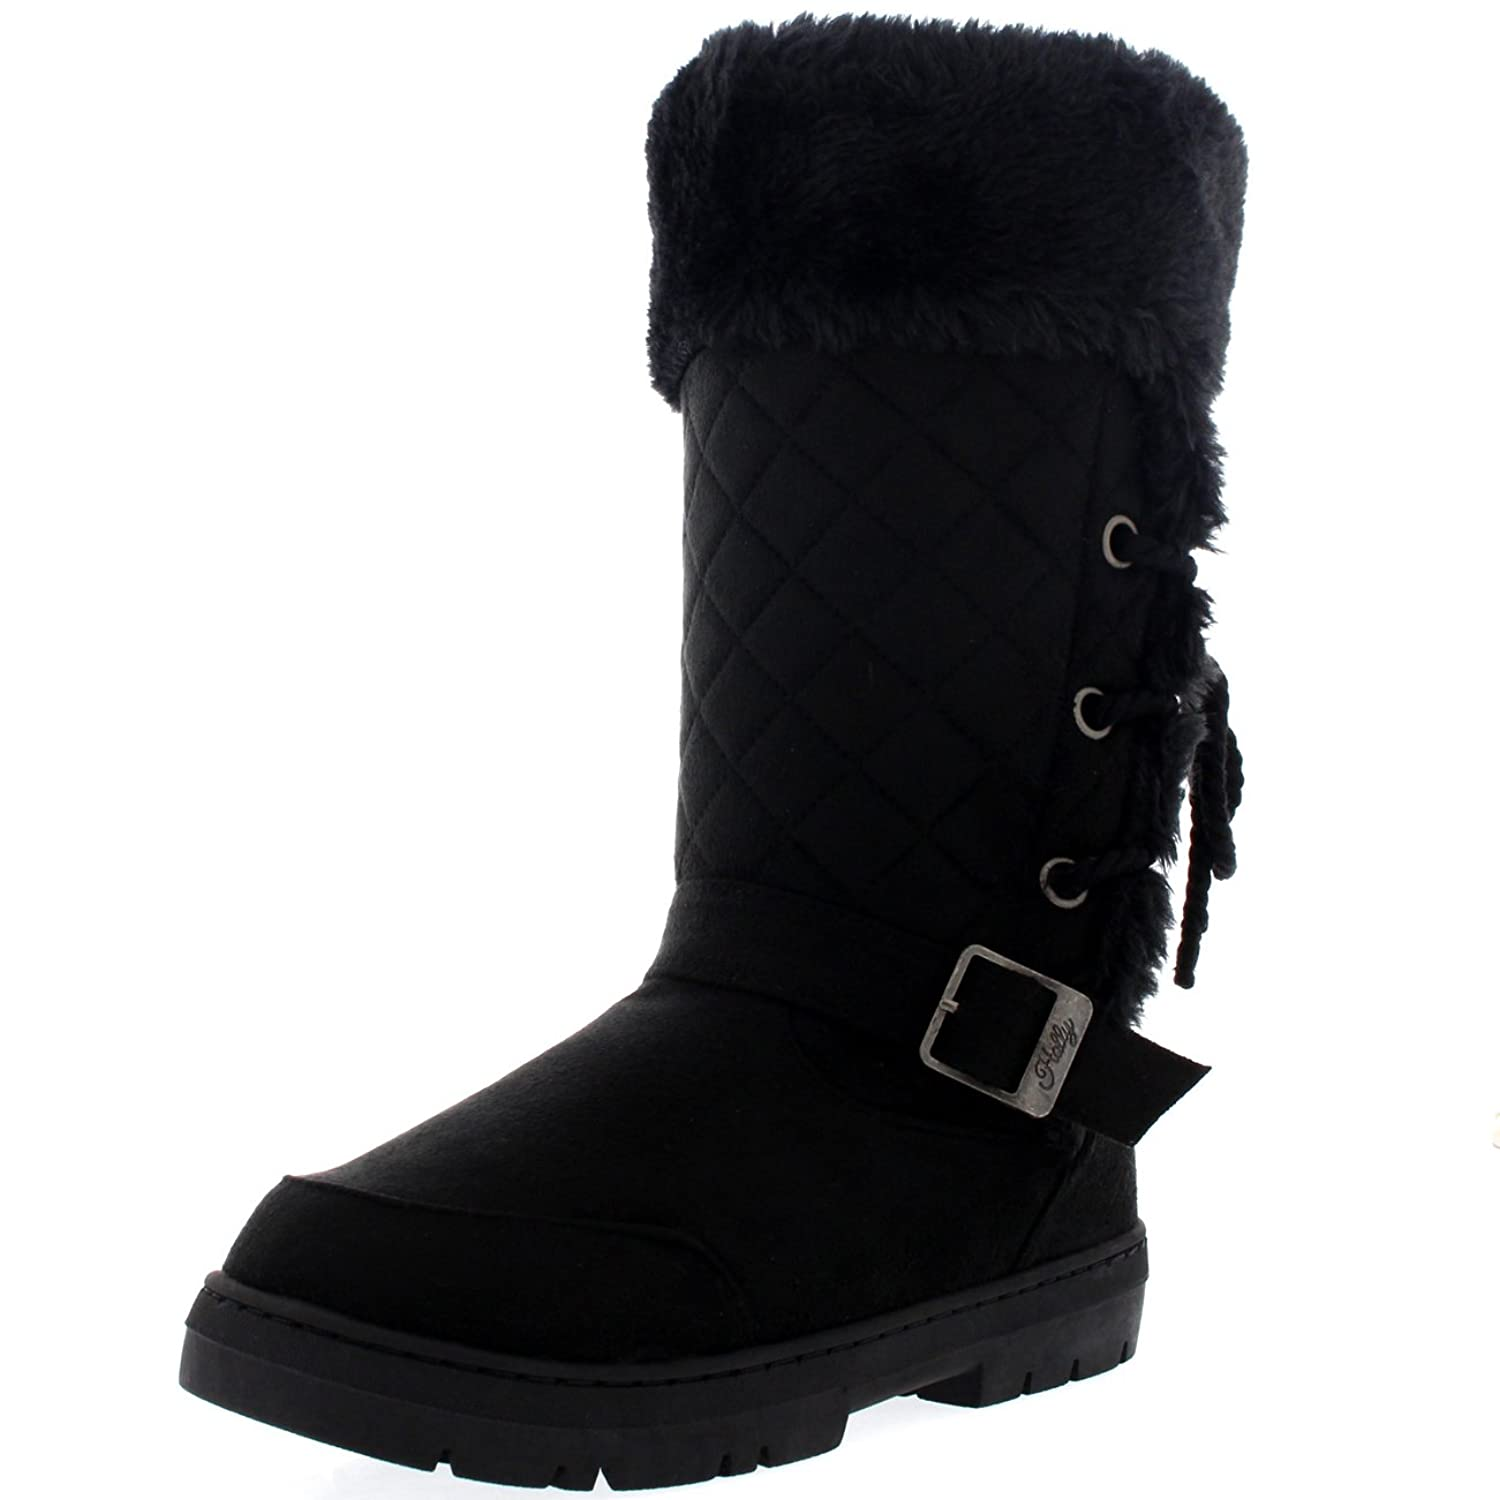 Womens Womens Rope Tie Back Tall Fur Lined Buckle Waterproof Winter Snow Rain Boots Clearance Sale Size 36